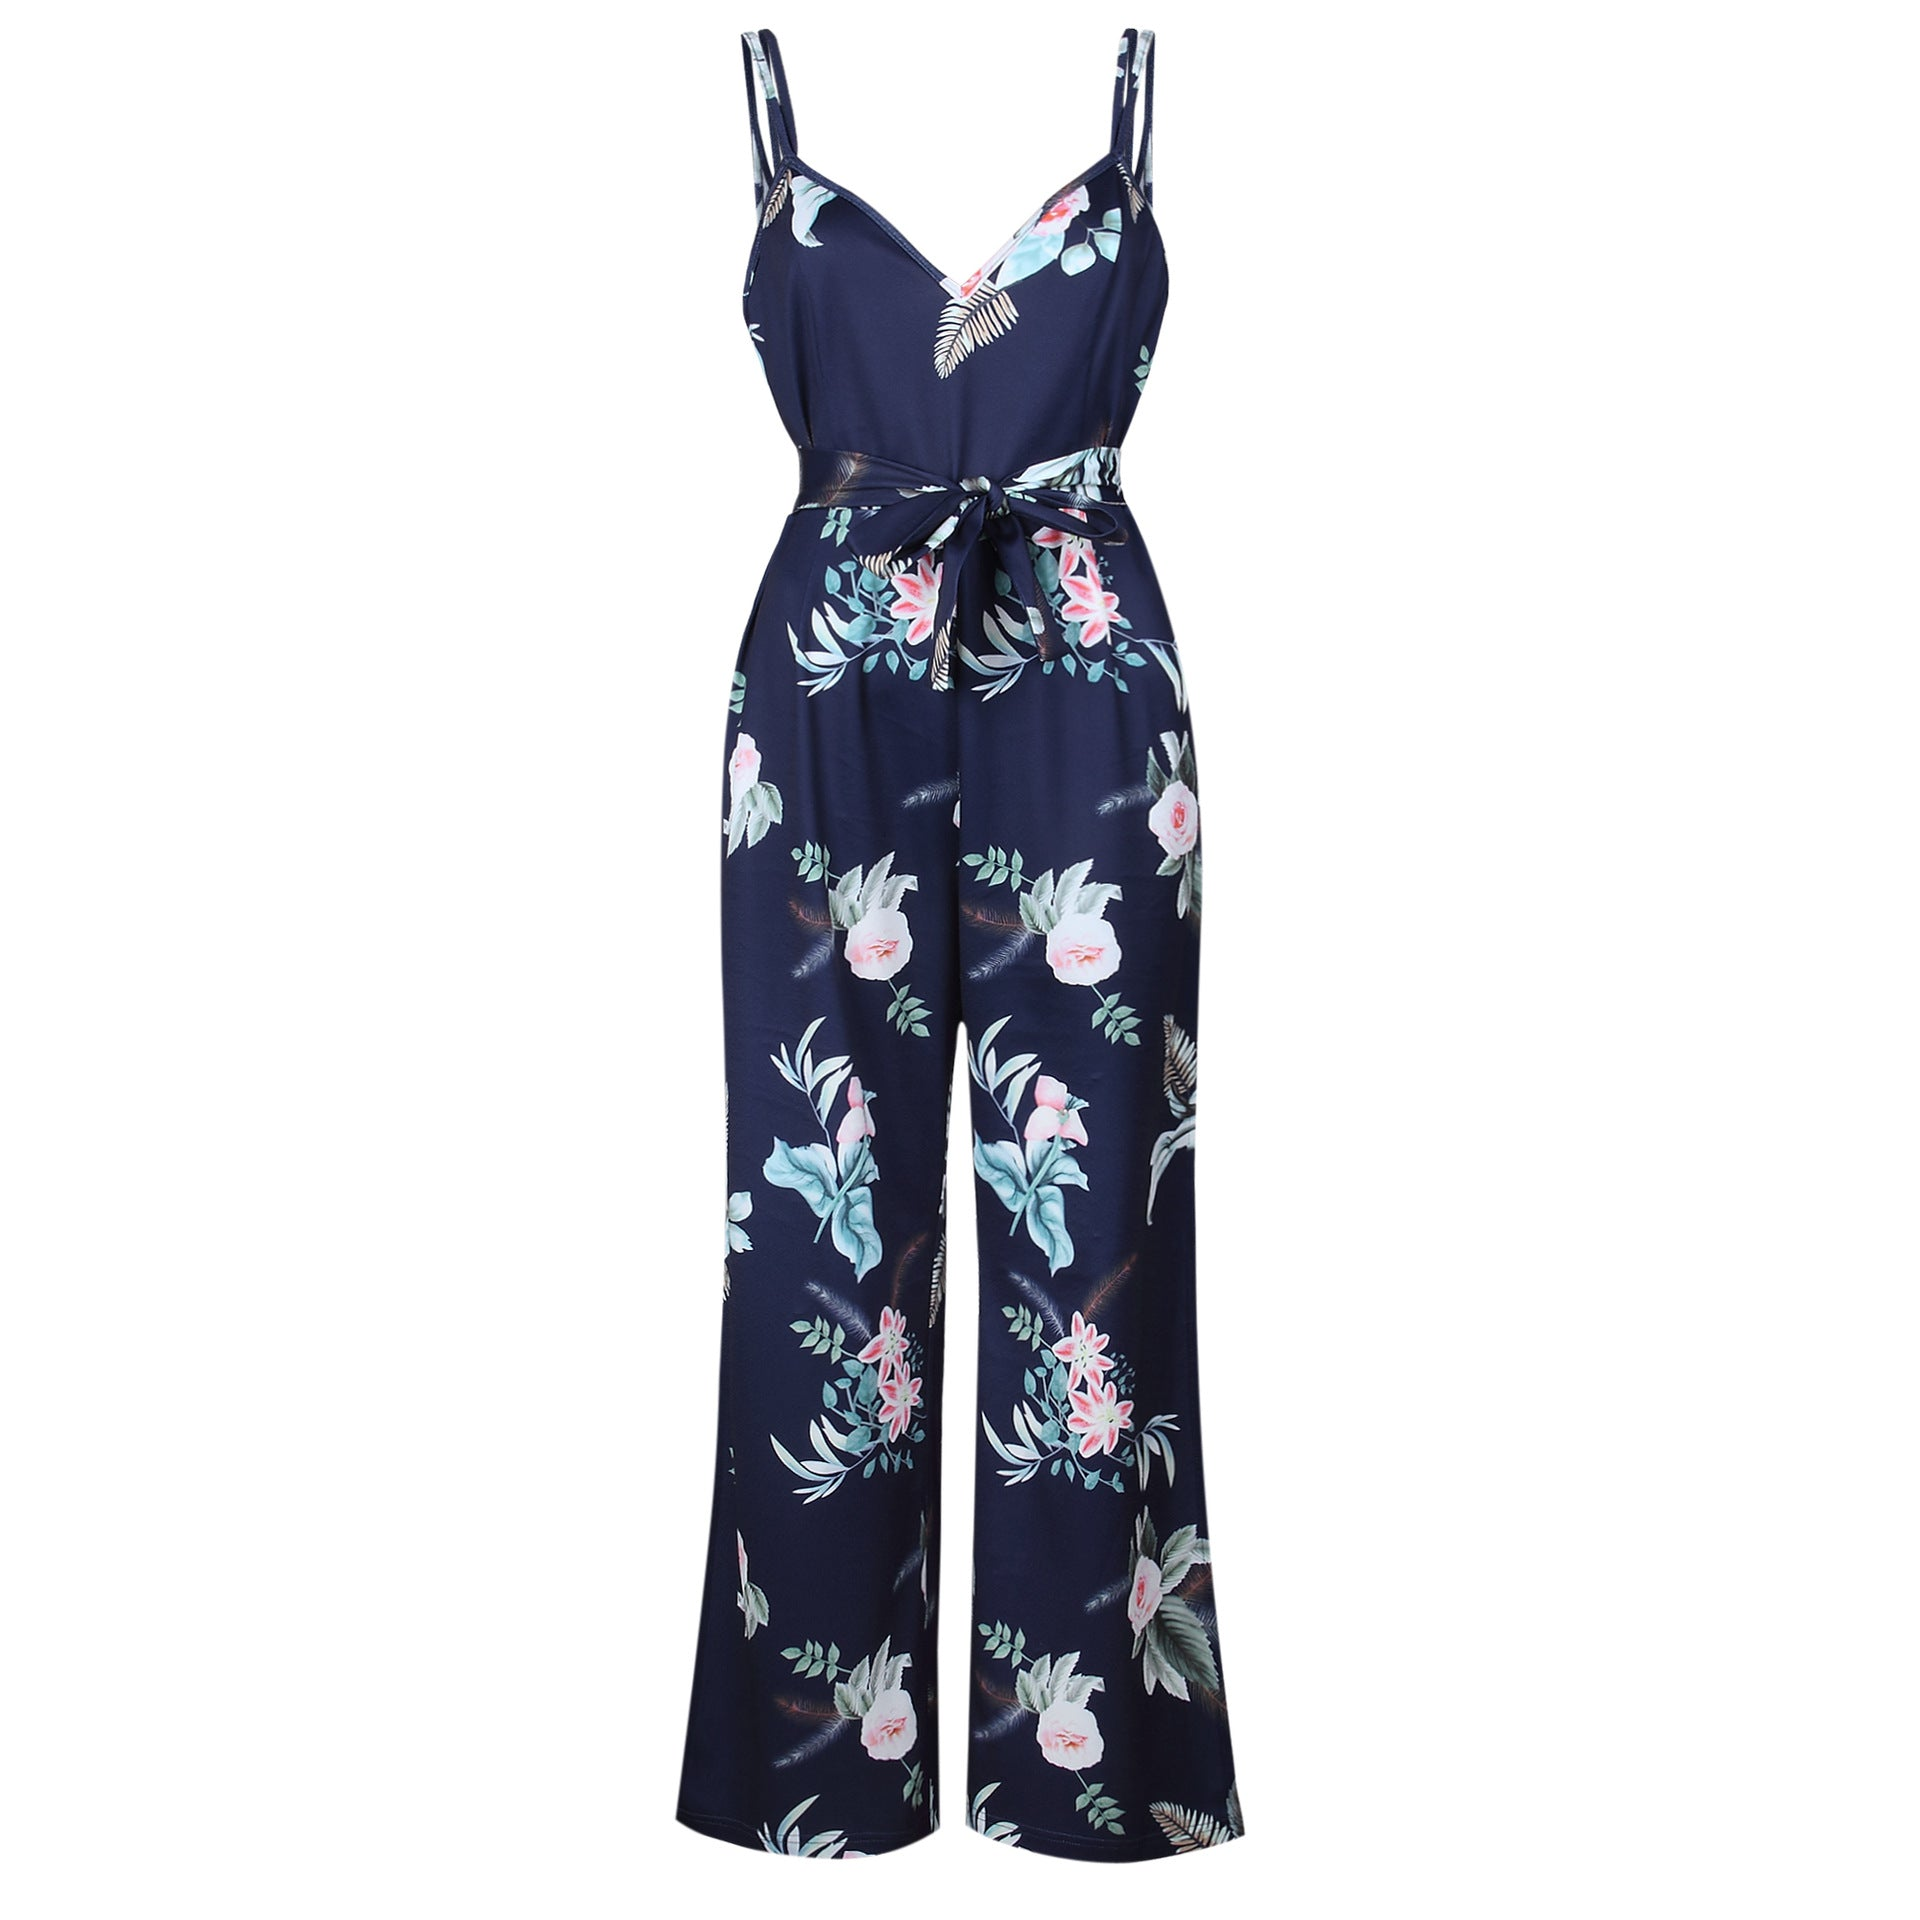 Costbuys  Women Floral Print Sexy Strap Jumpsuits Off Shoulder Summer Beach Rompers Wide Leg Pants Elegant Jumpsuit Overalls - B